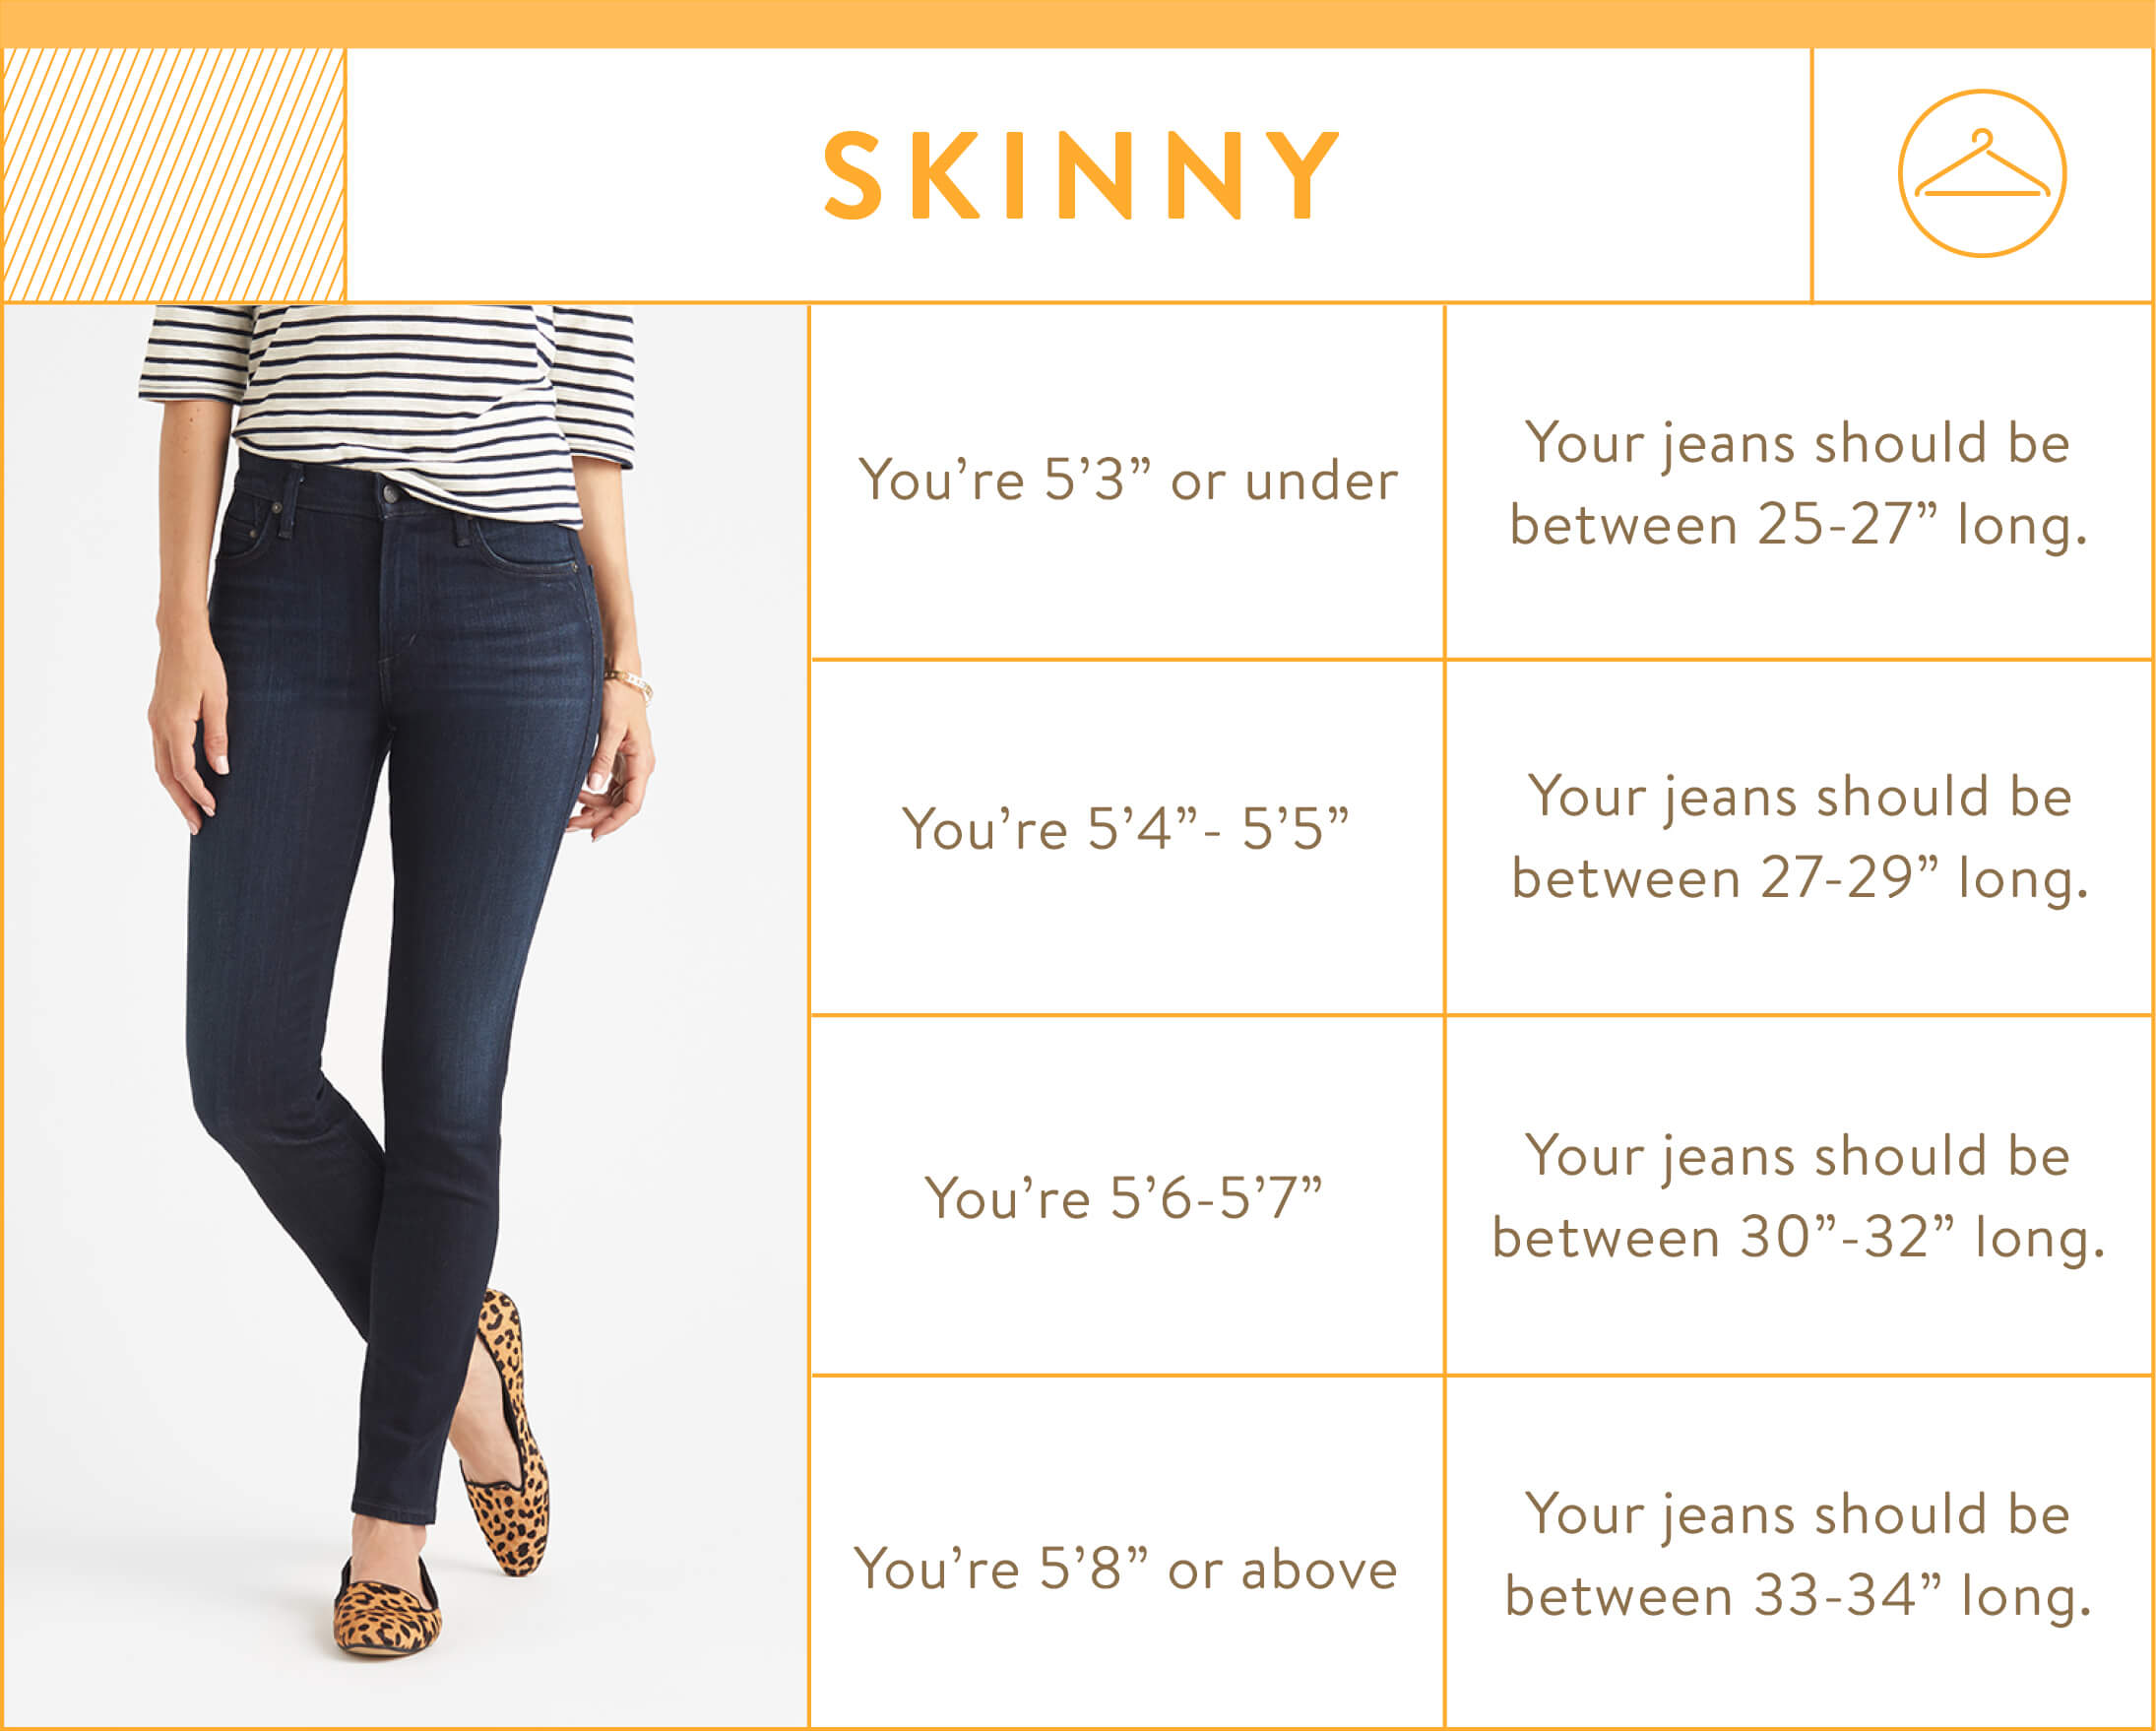 Jeans Size Charts for Men. What size is a 30 in jeans, what a 32? Use our perfect-fit jeans calculator to convert any waist size to the corresponding US standard jeans size. In this jeans size conversion chart, you will find an overview of jeans sizes for men and boys.